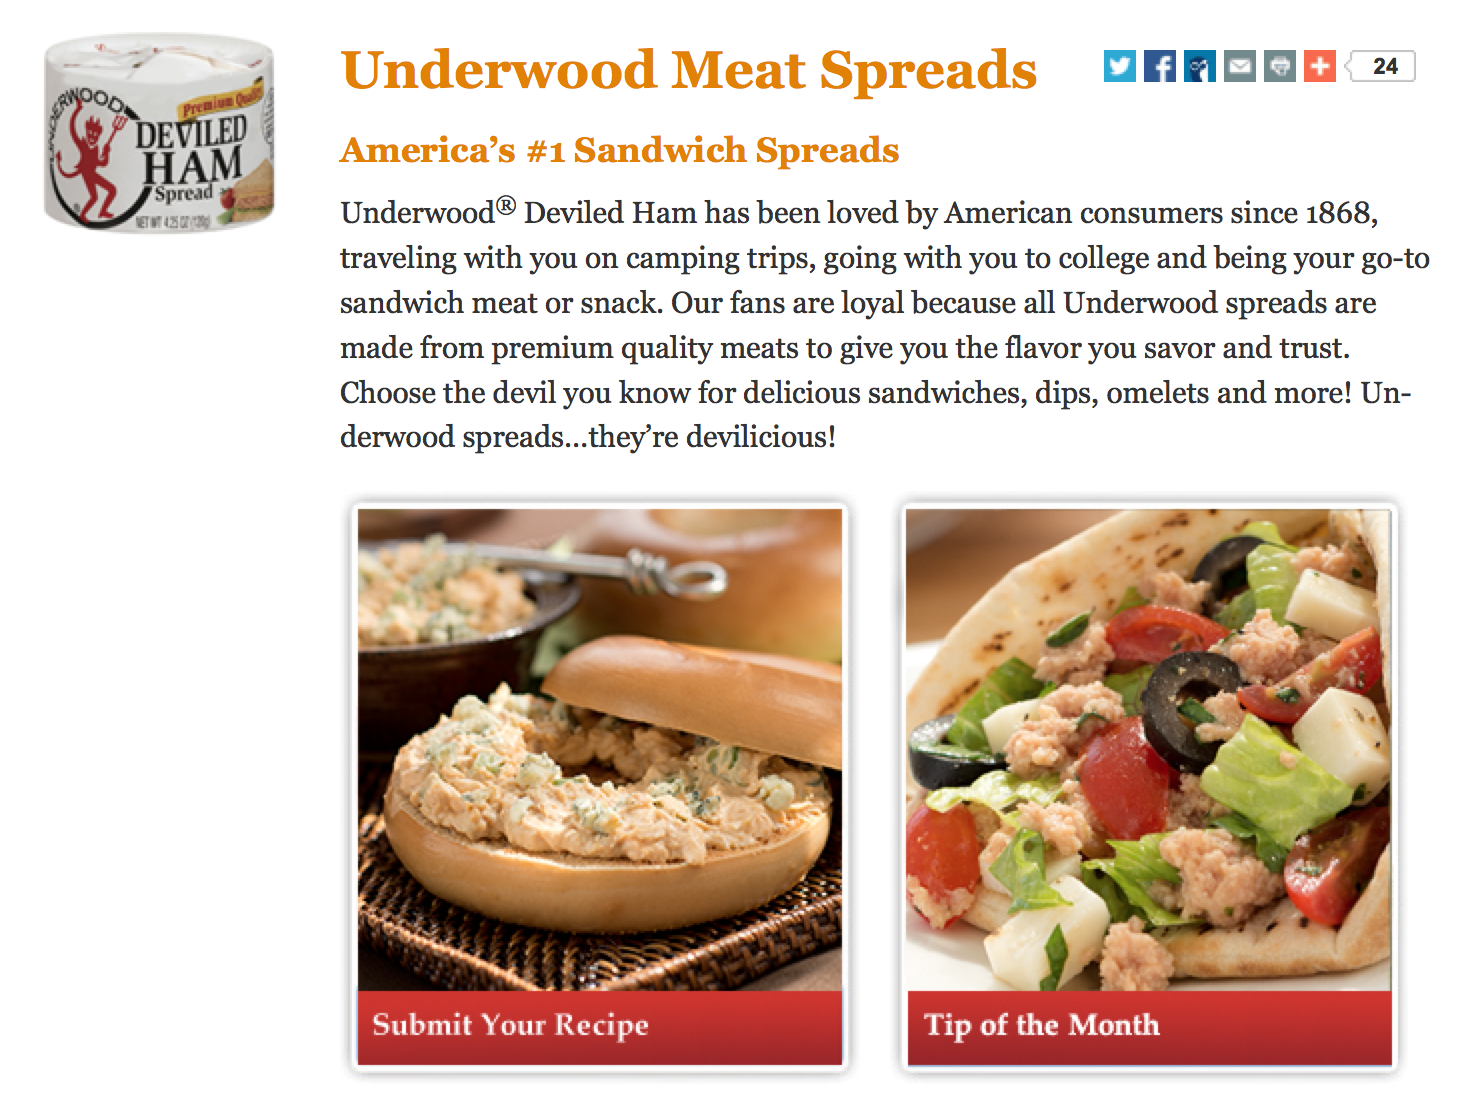 Web writing for Underwood Meat Spreads